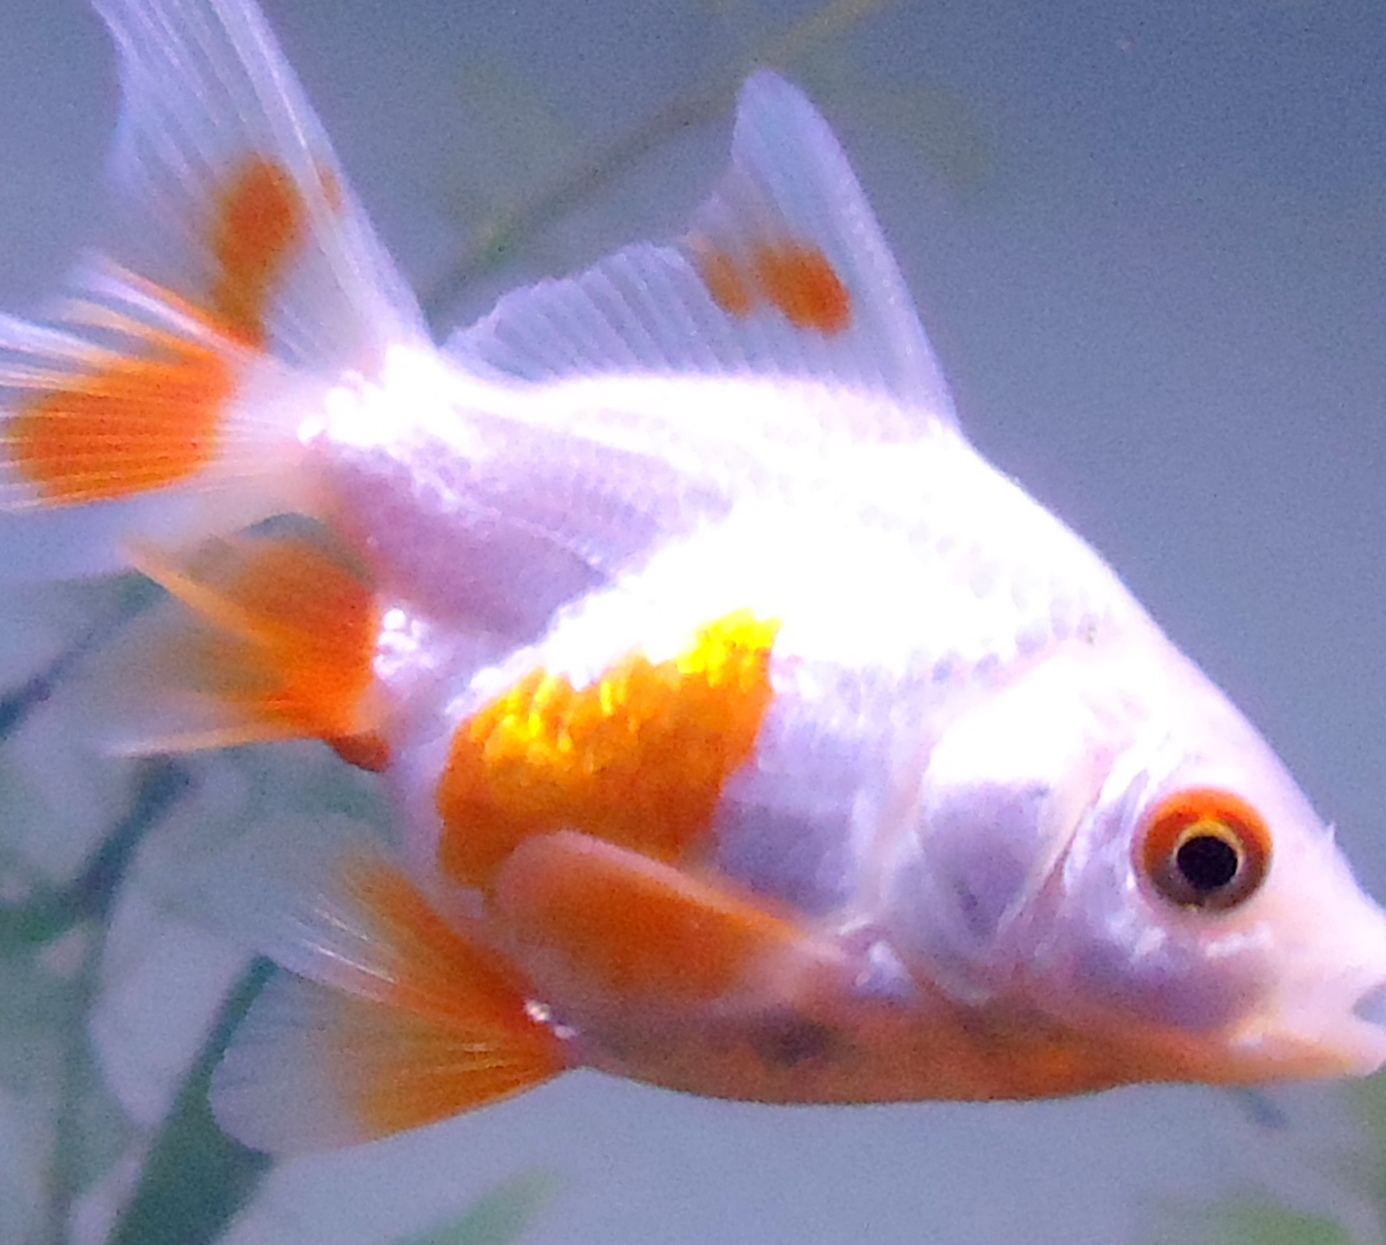 7 way to appreciate goldfish melanie 39 s dreams for Dreaming of eating fish